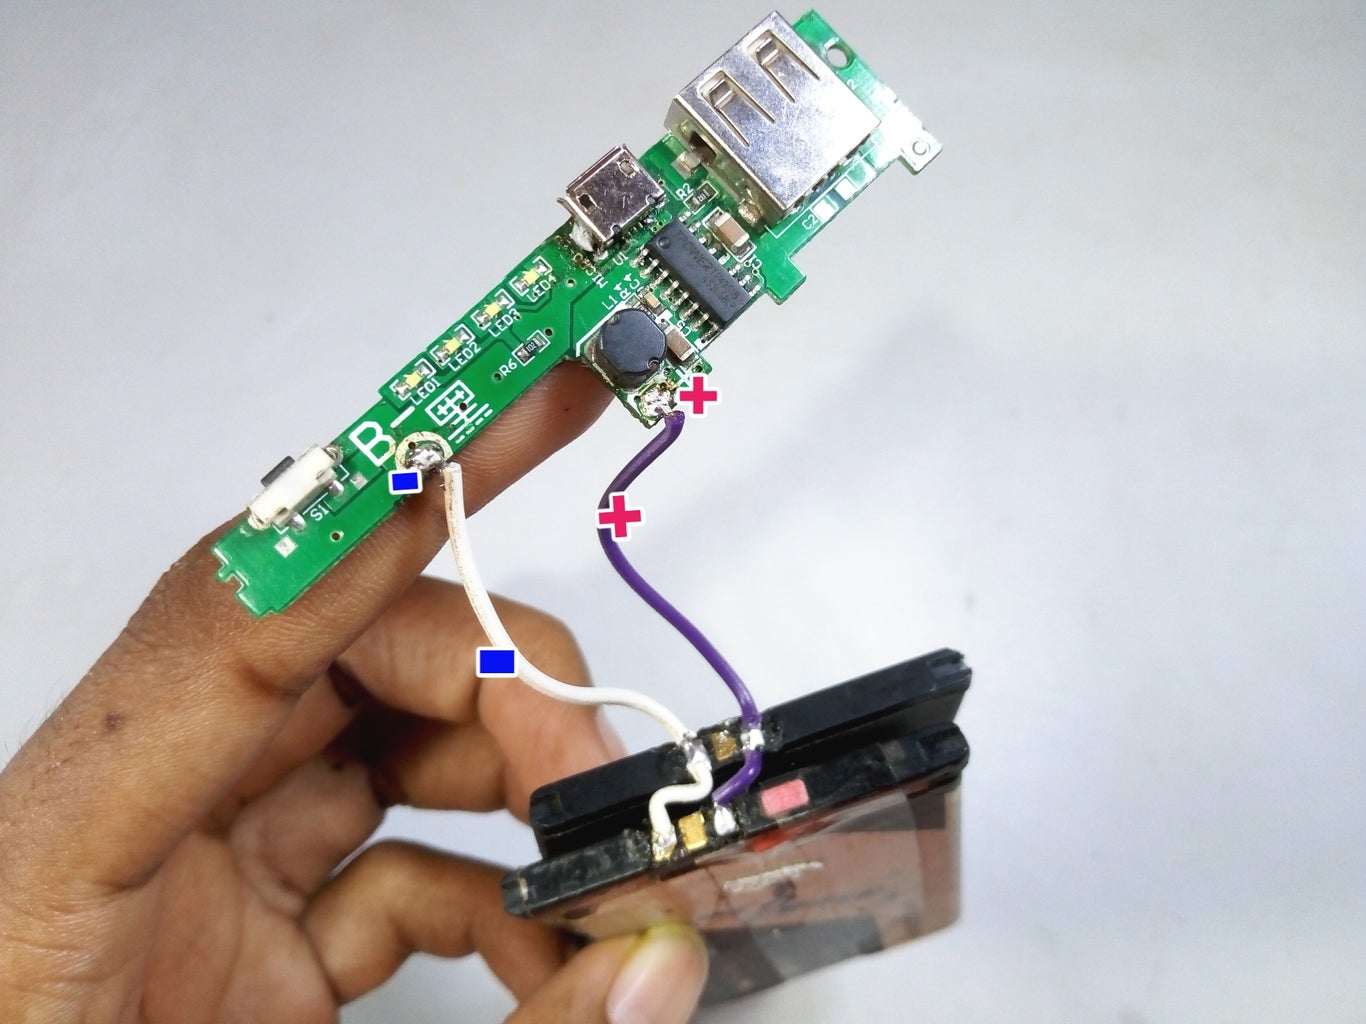 Connect Batteries to the Power Bank Kit